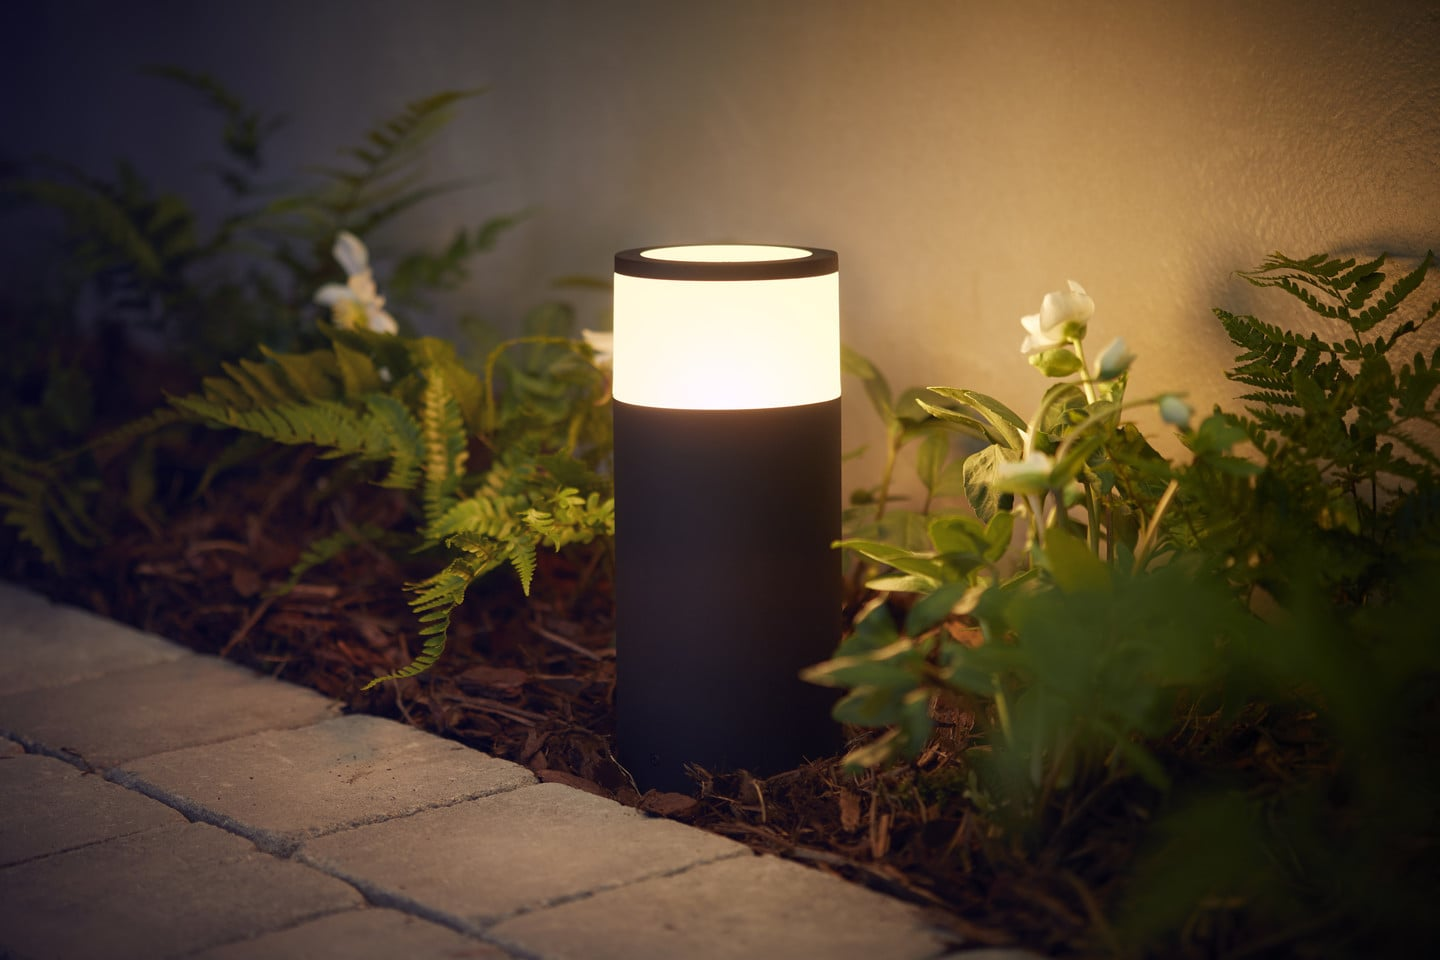 Philips Hue Outdoor Lights will Complete Your Alexa Addiction